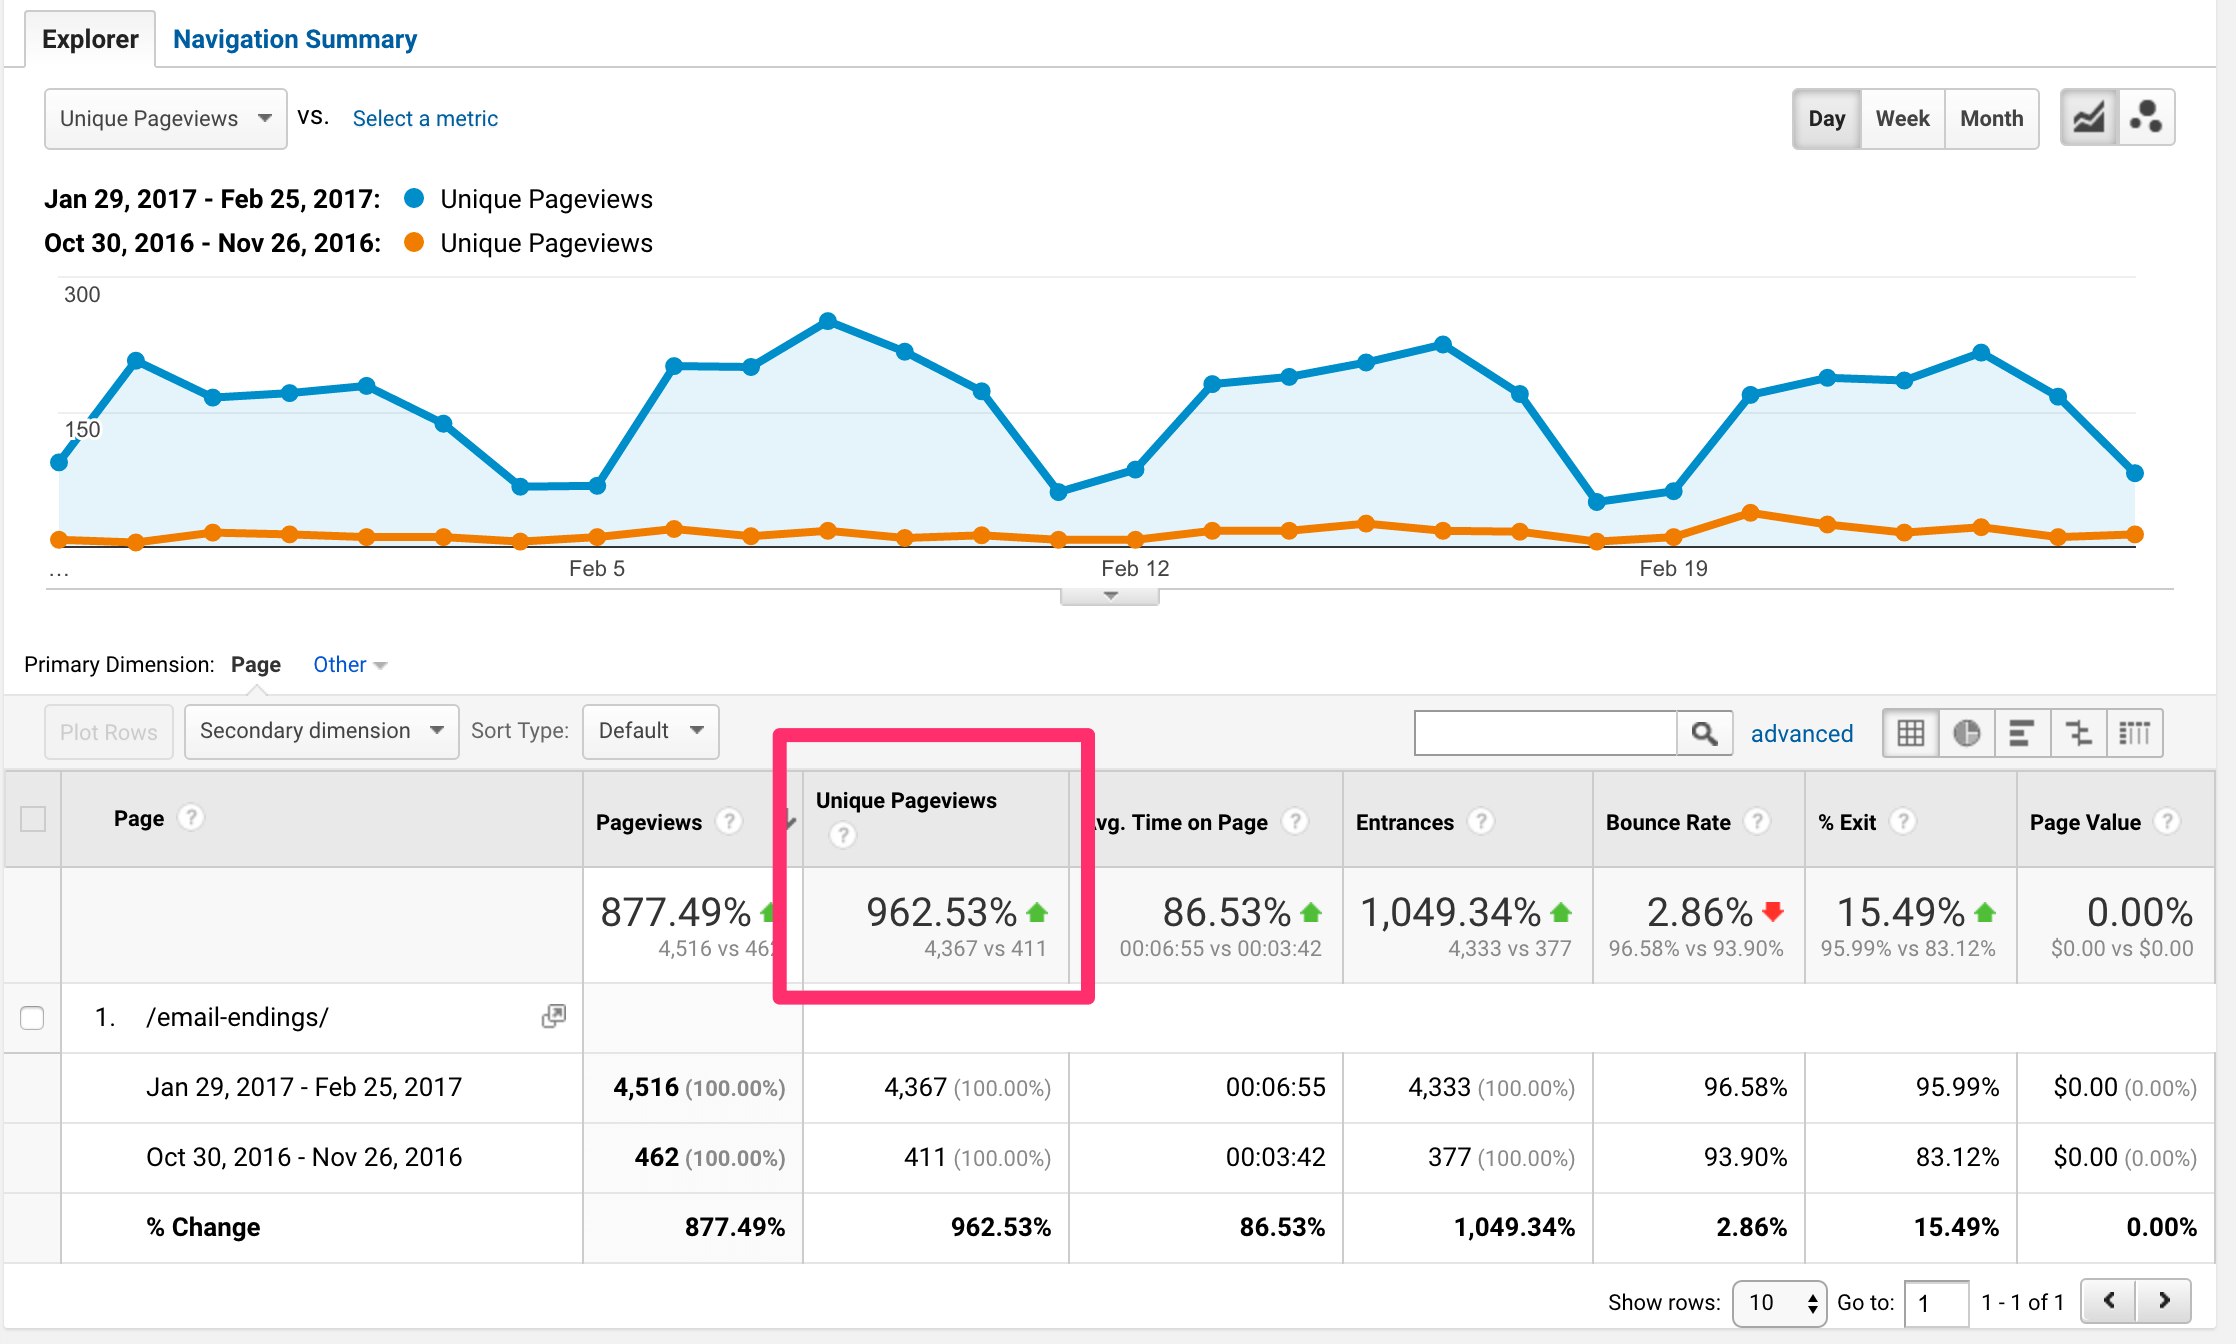 Increase in page views